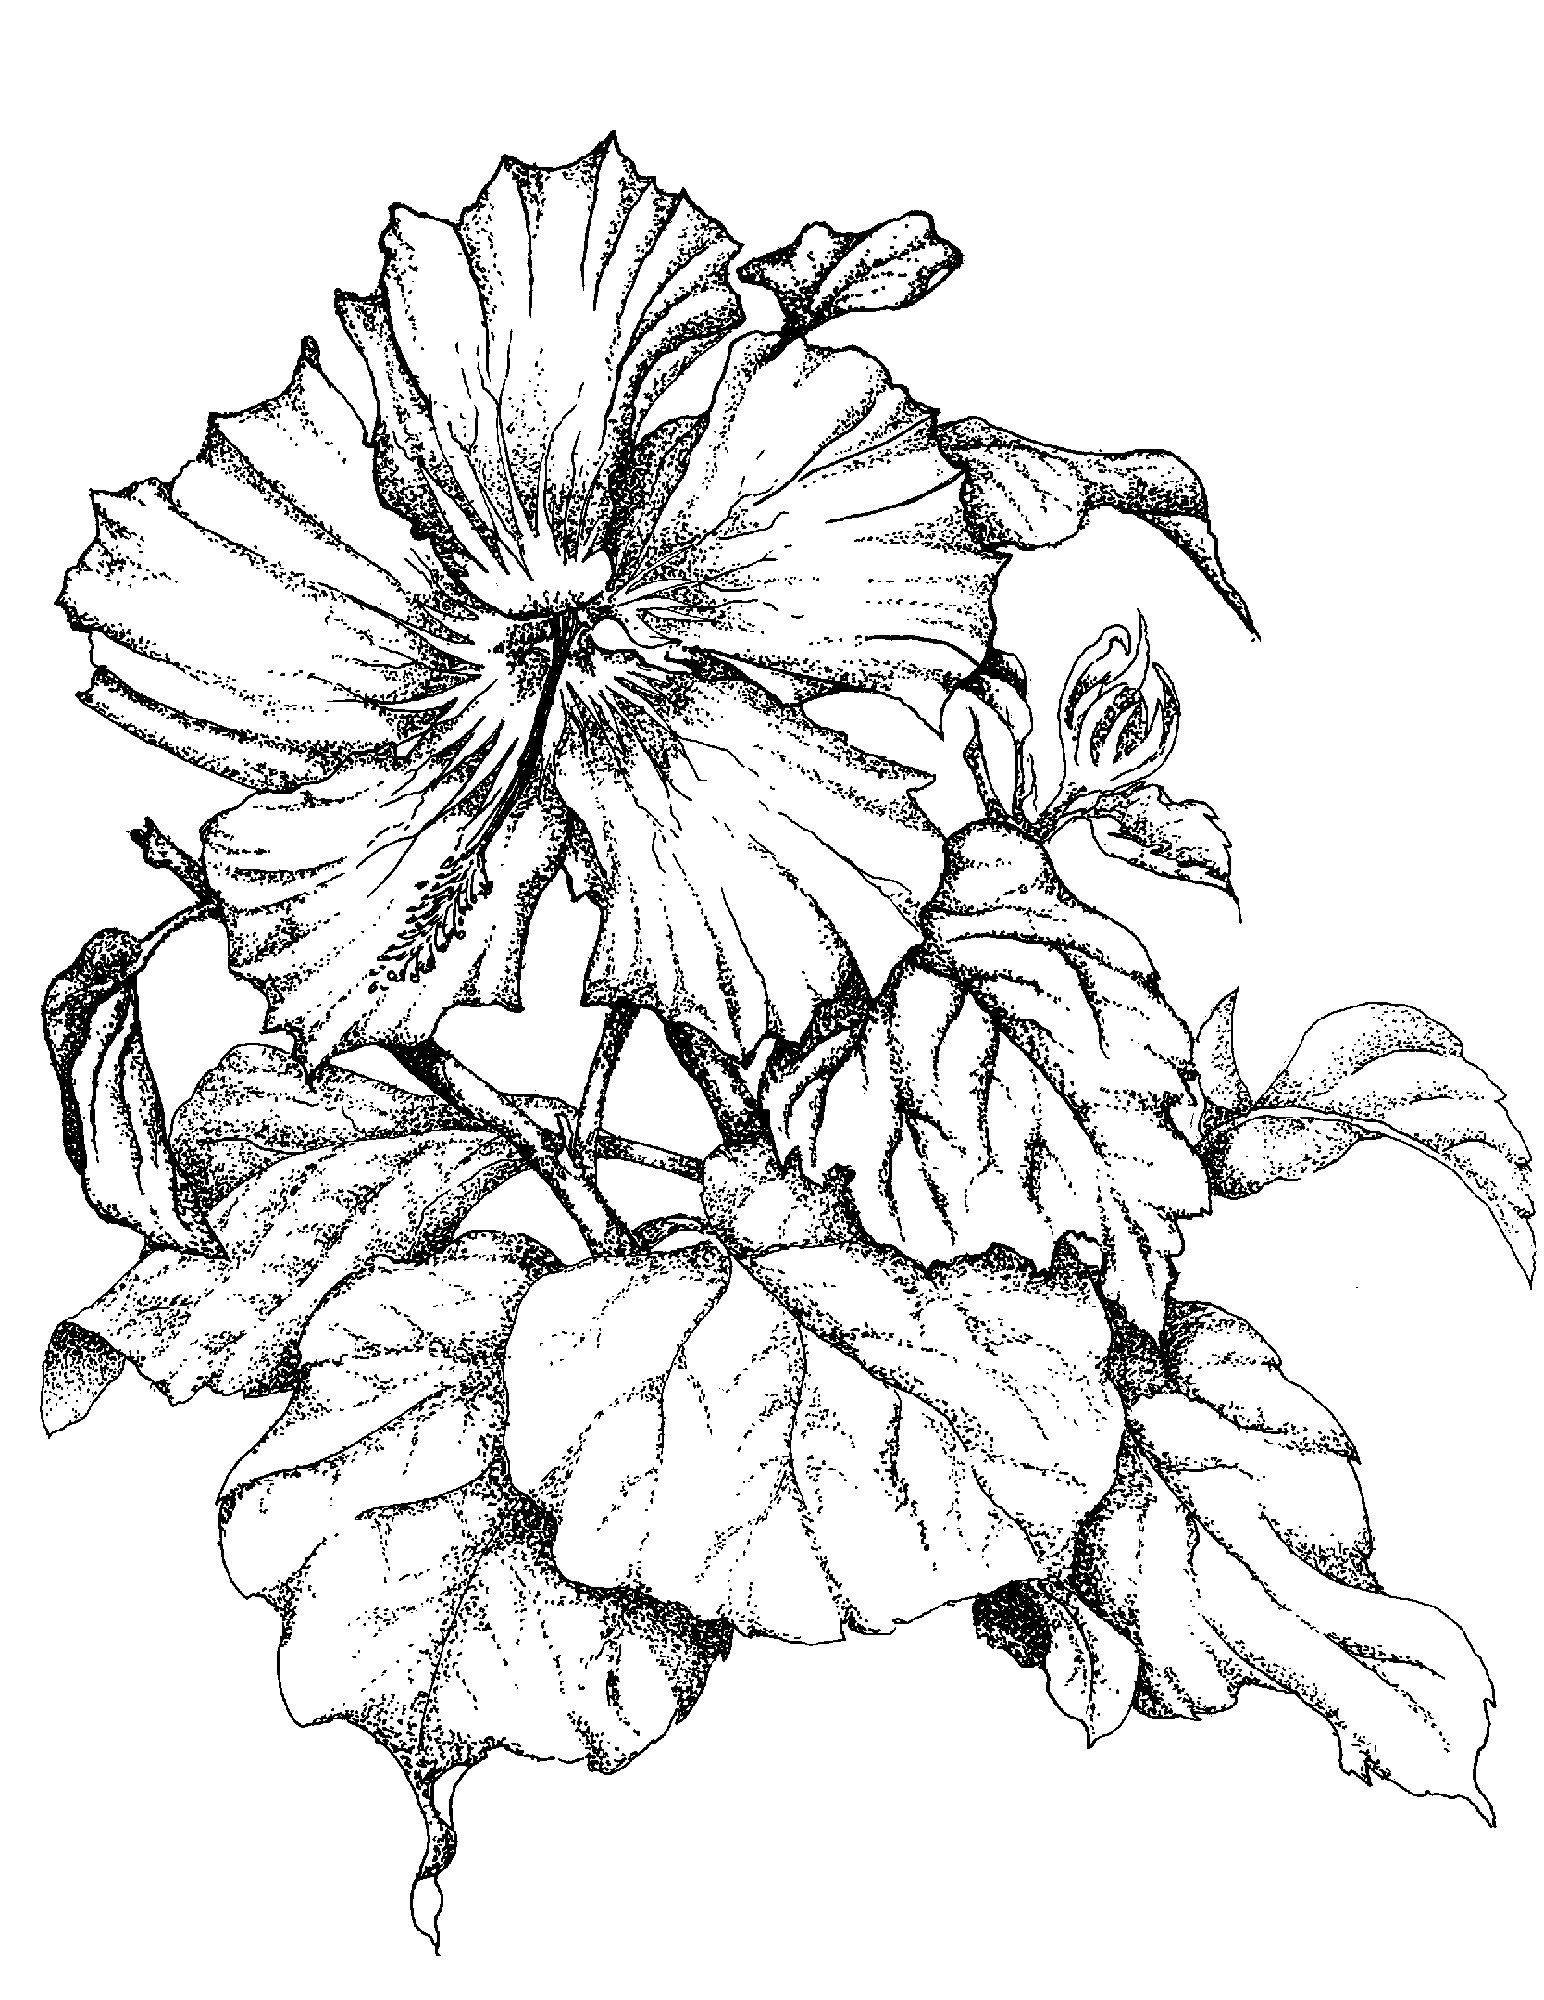 Hibiscus Flower Drawings Tattoo Design Page Jpg 1544 2000 Hibiscus Flower Drawing Hawaiian Flower Drawing Flower Drawing